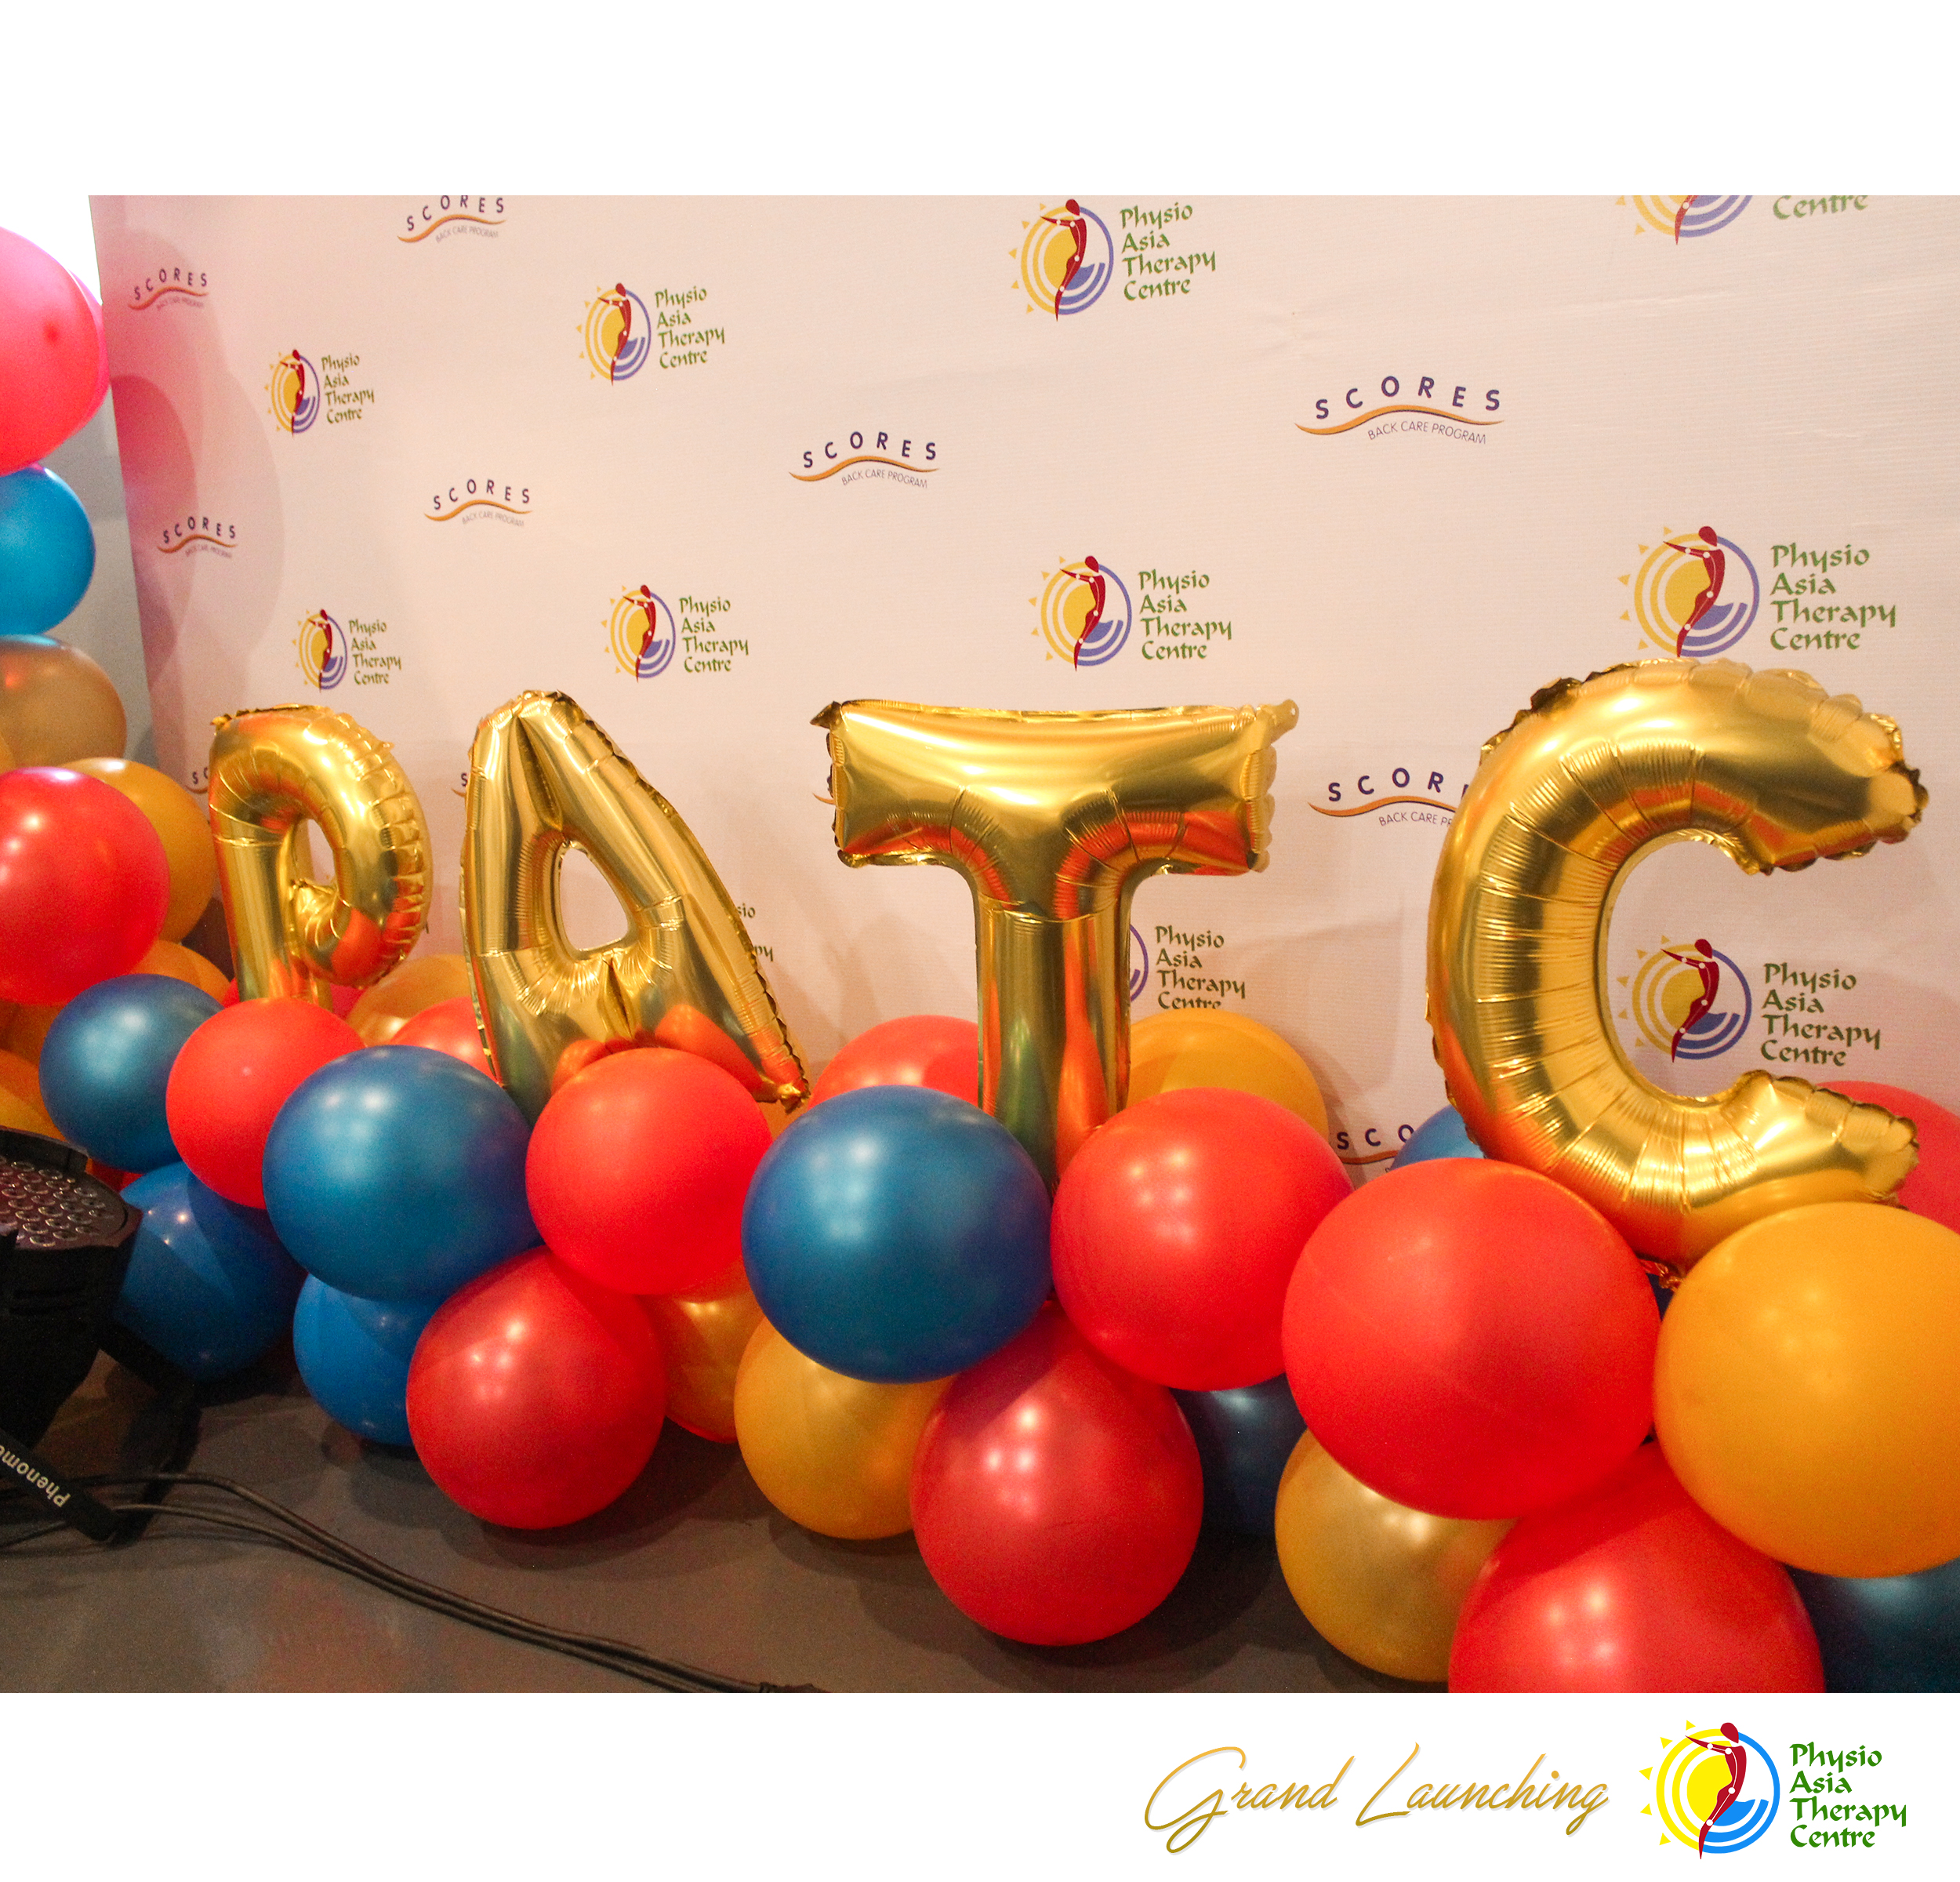 Centre Grand Launching -  Tecar Therapy